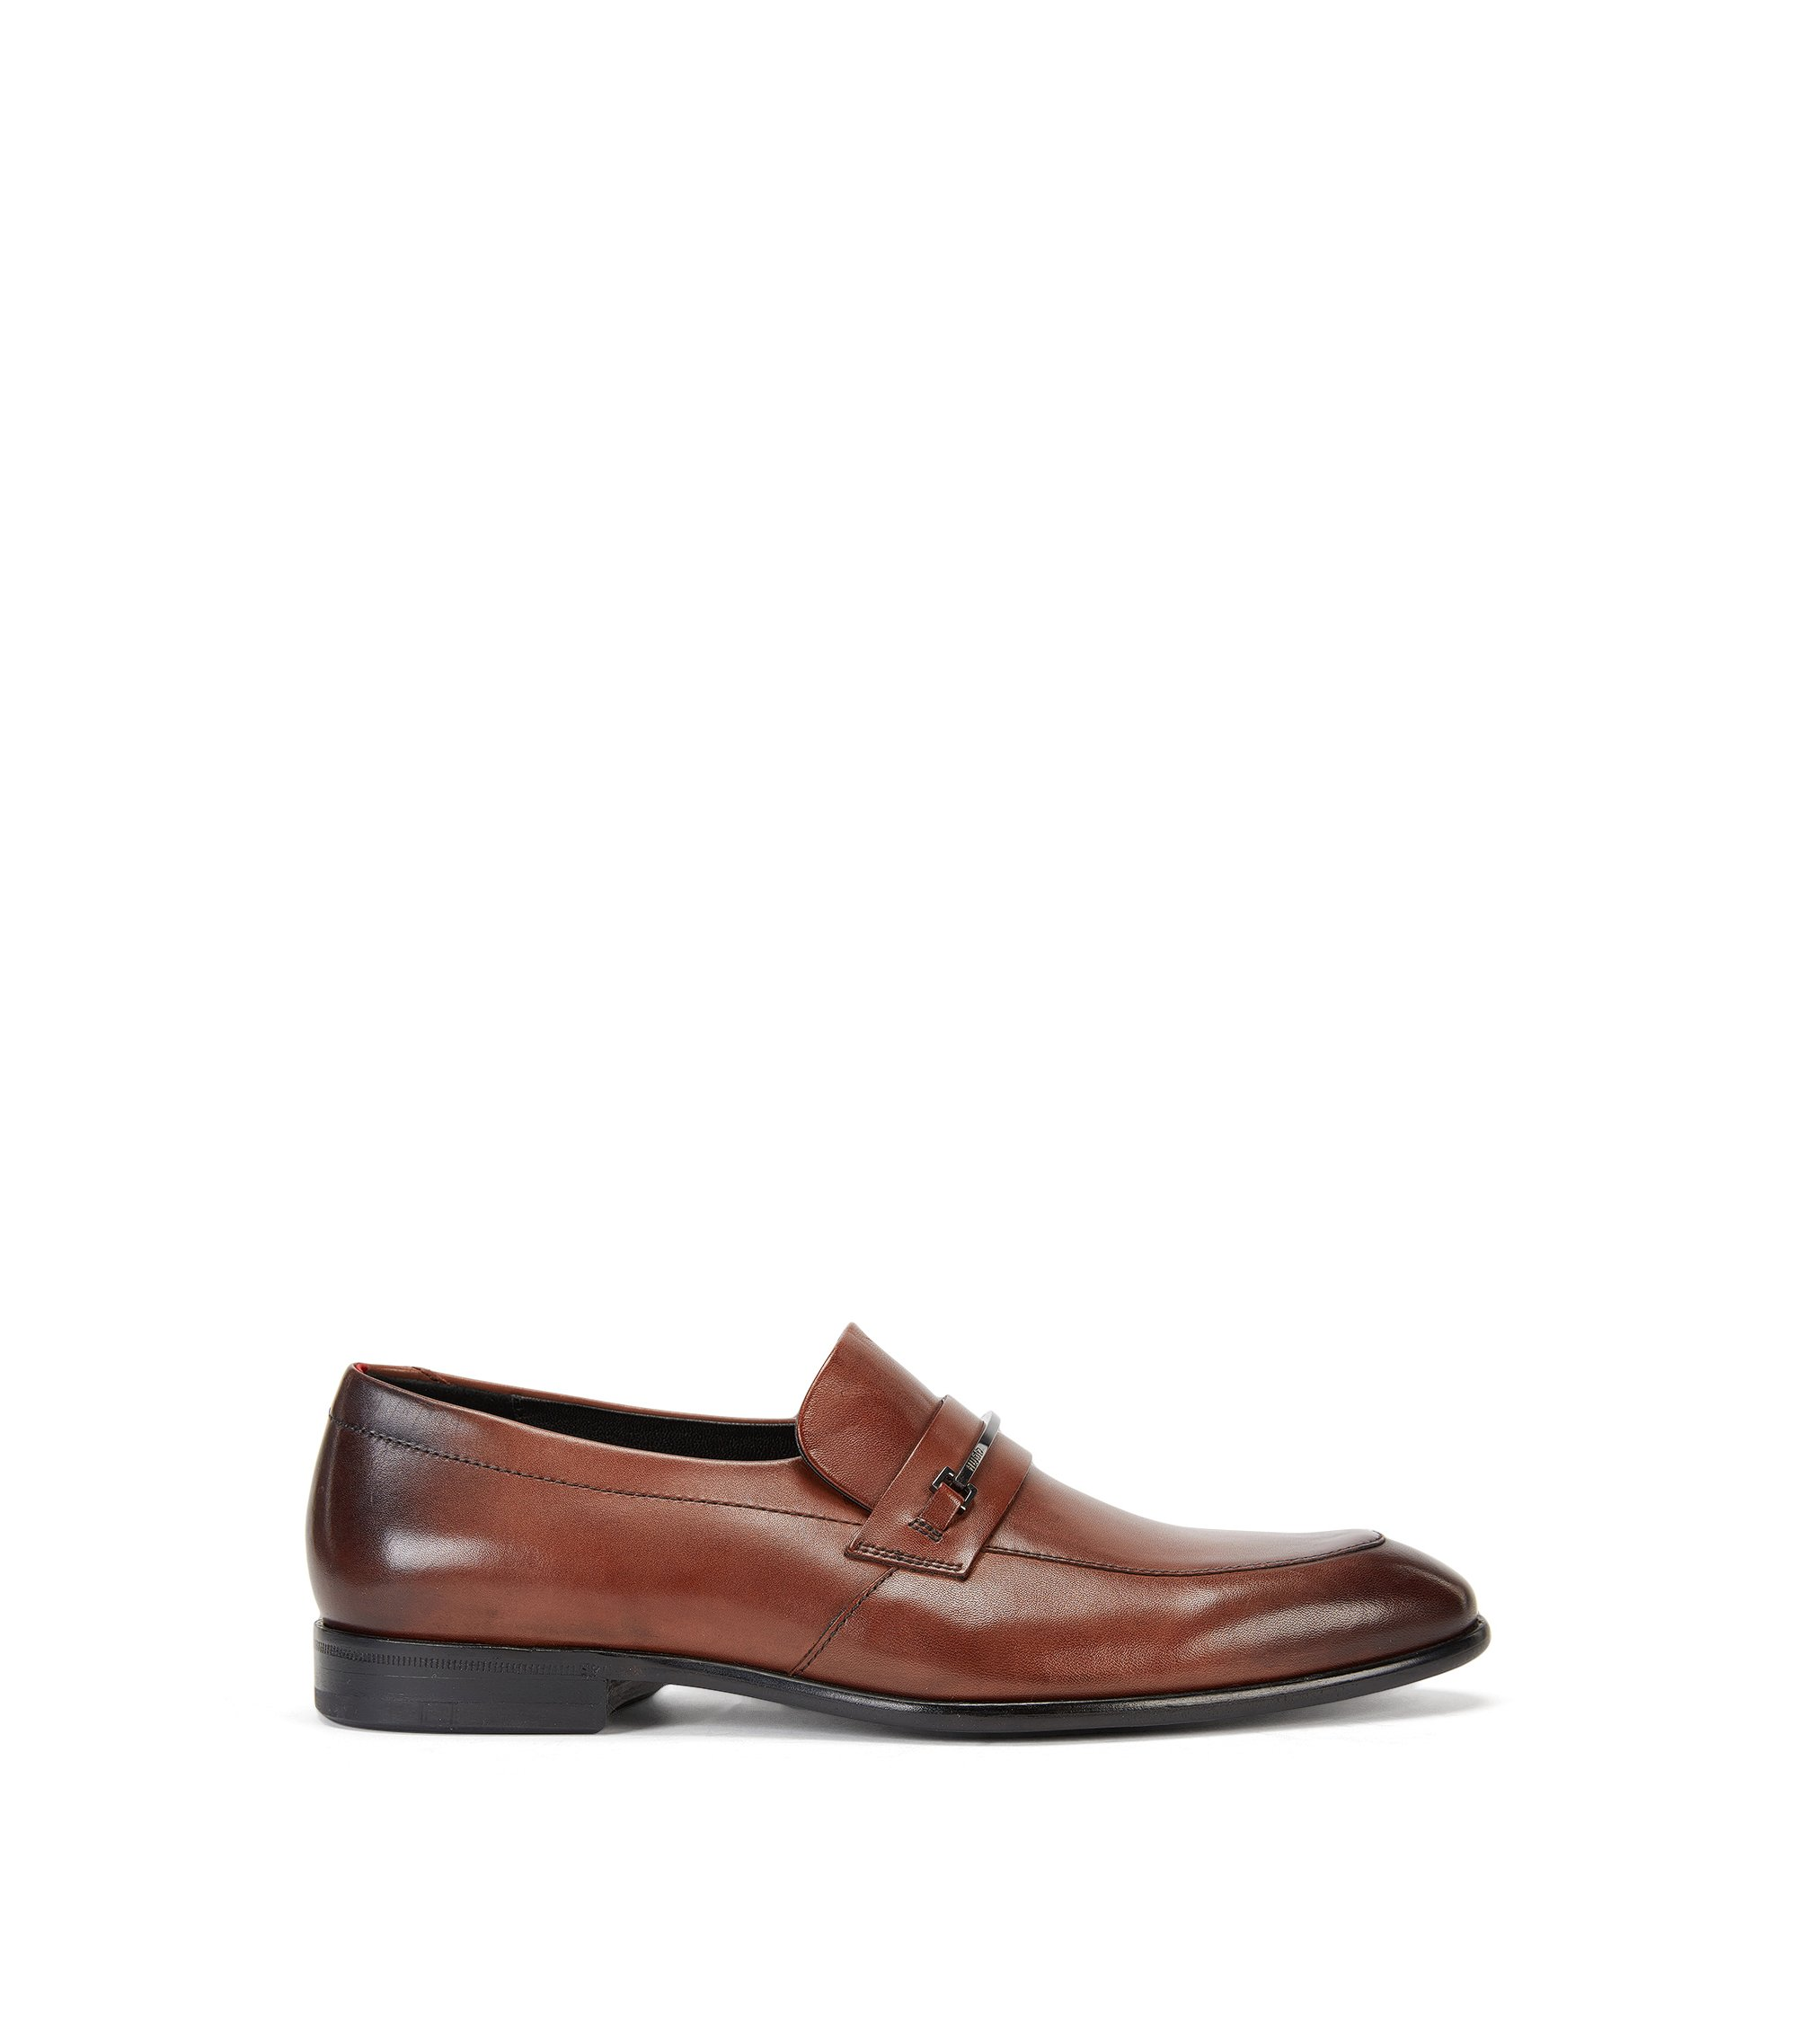 Horse-Bit Leather Loafer | Dressapp Loaf Buhw, Brown